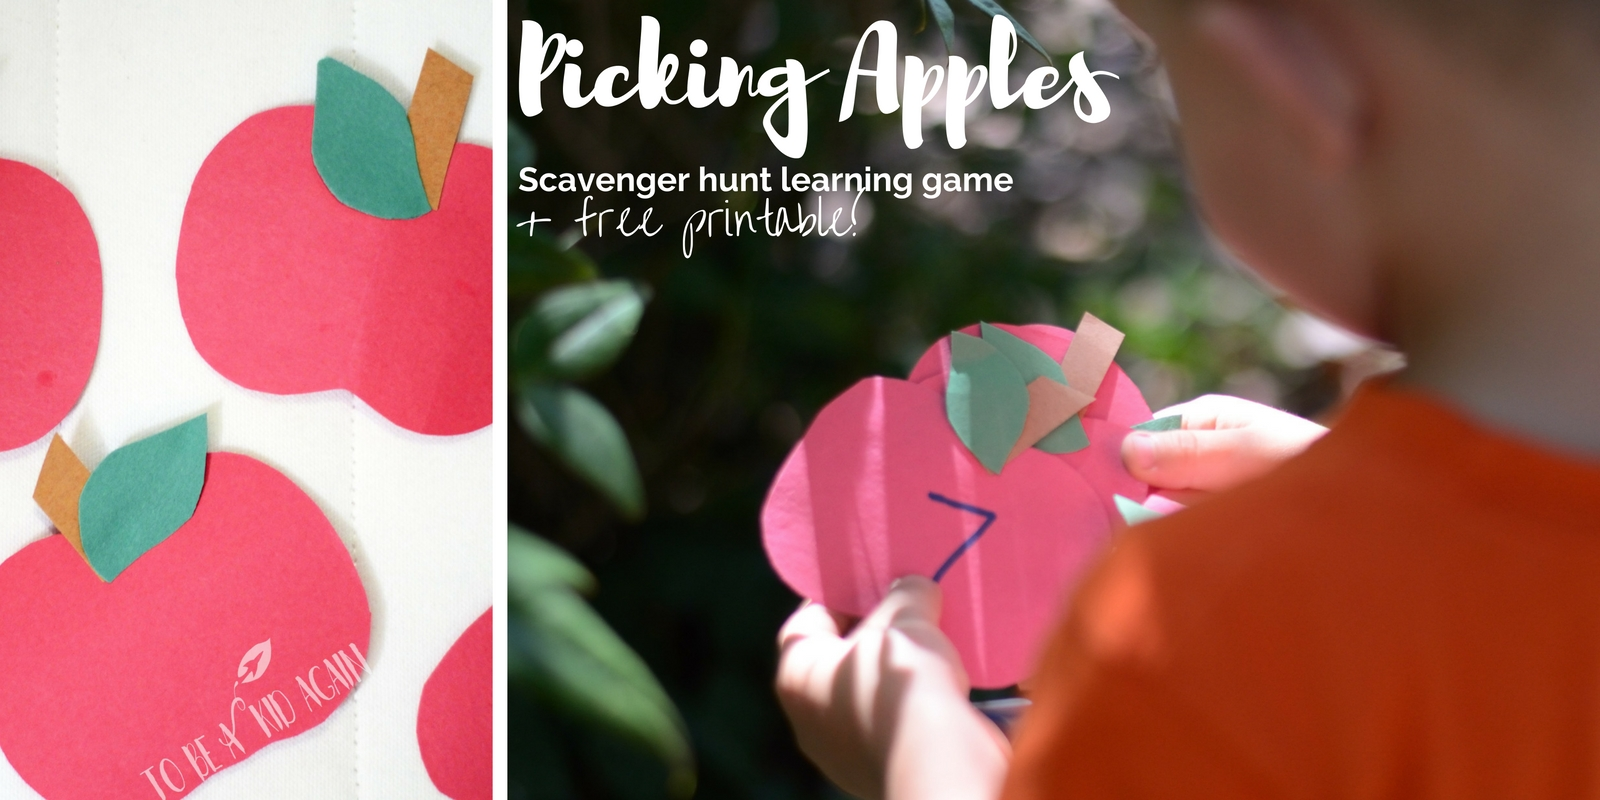 picking apples scavenger hunt learning game